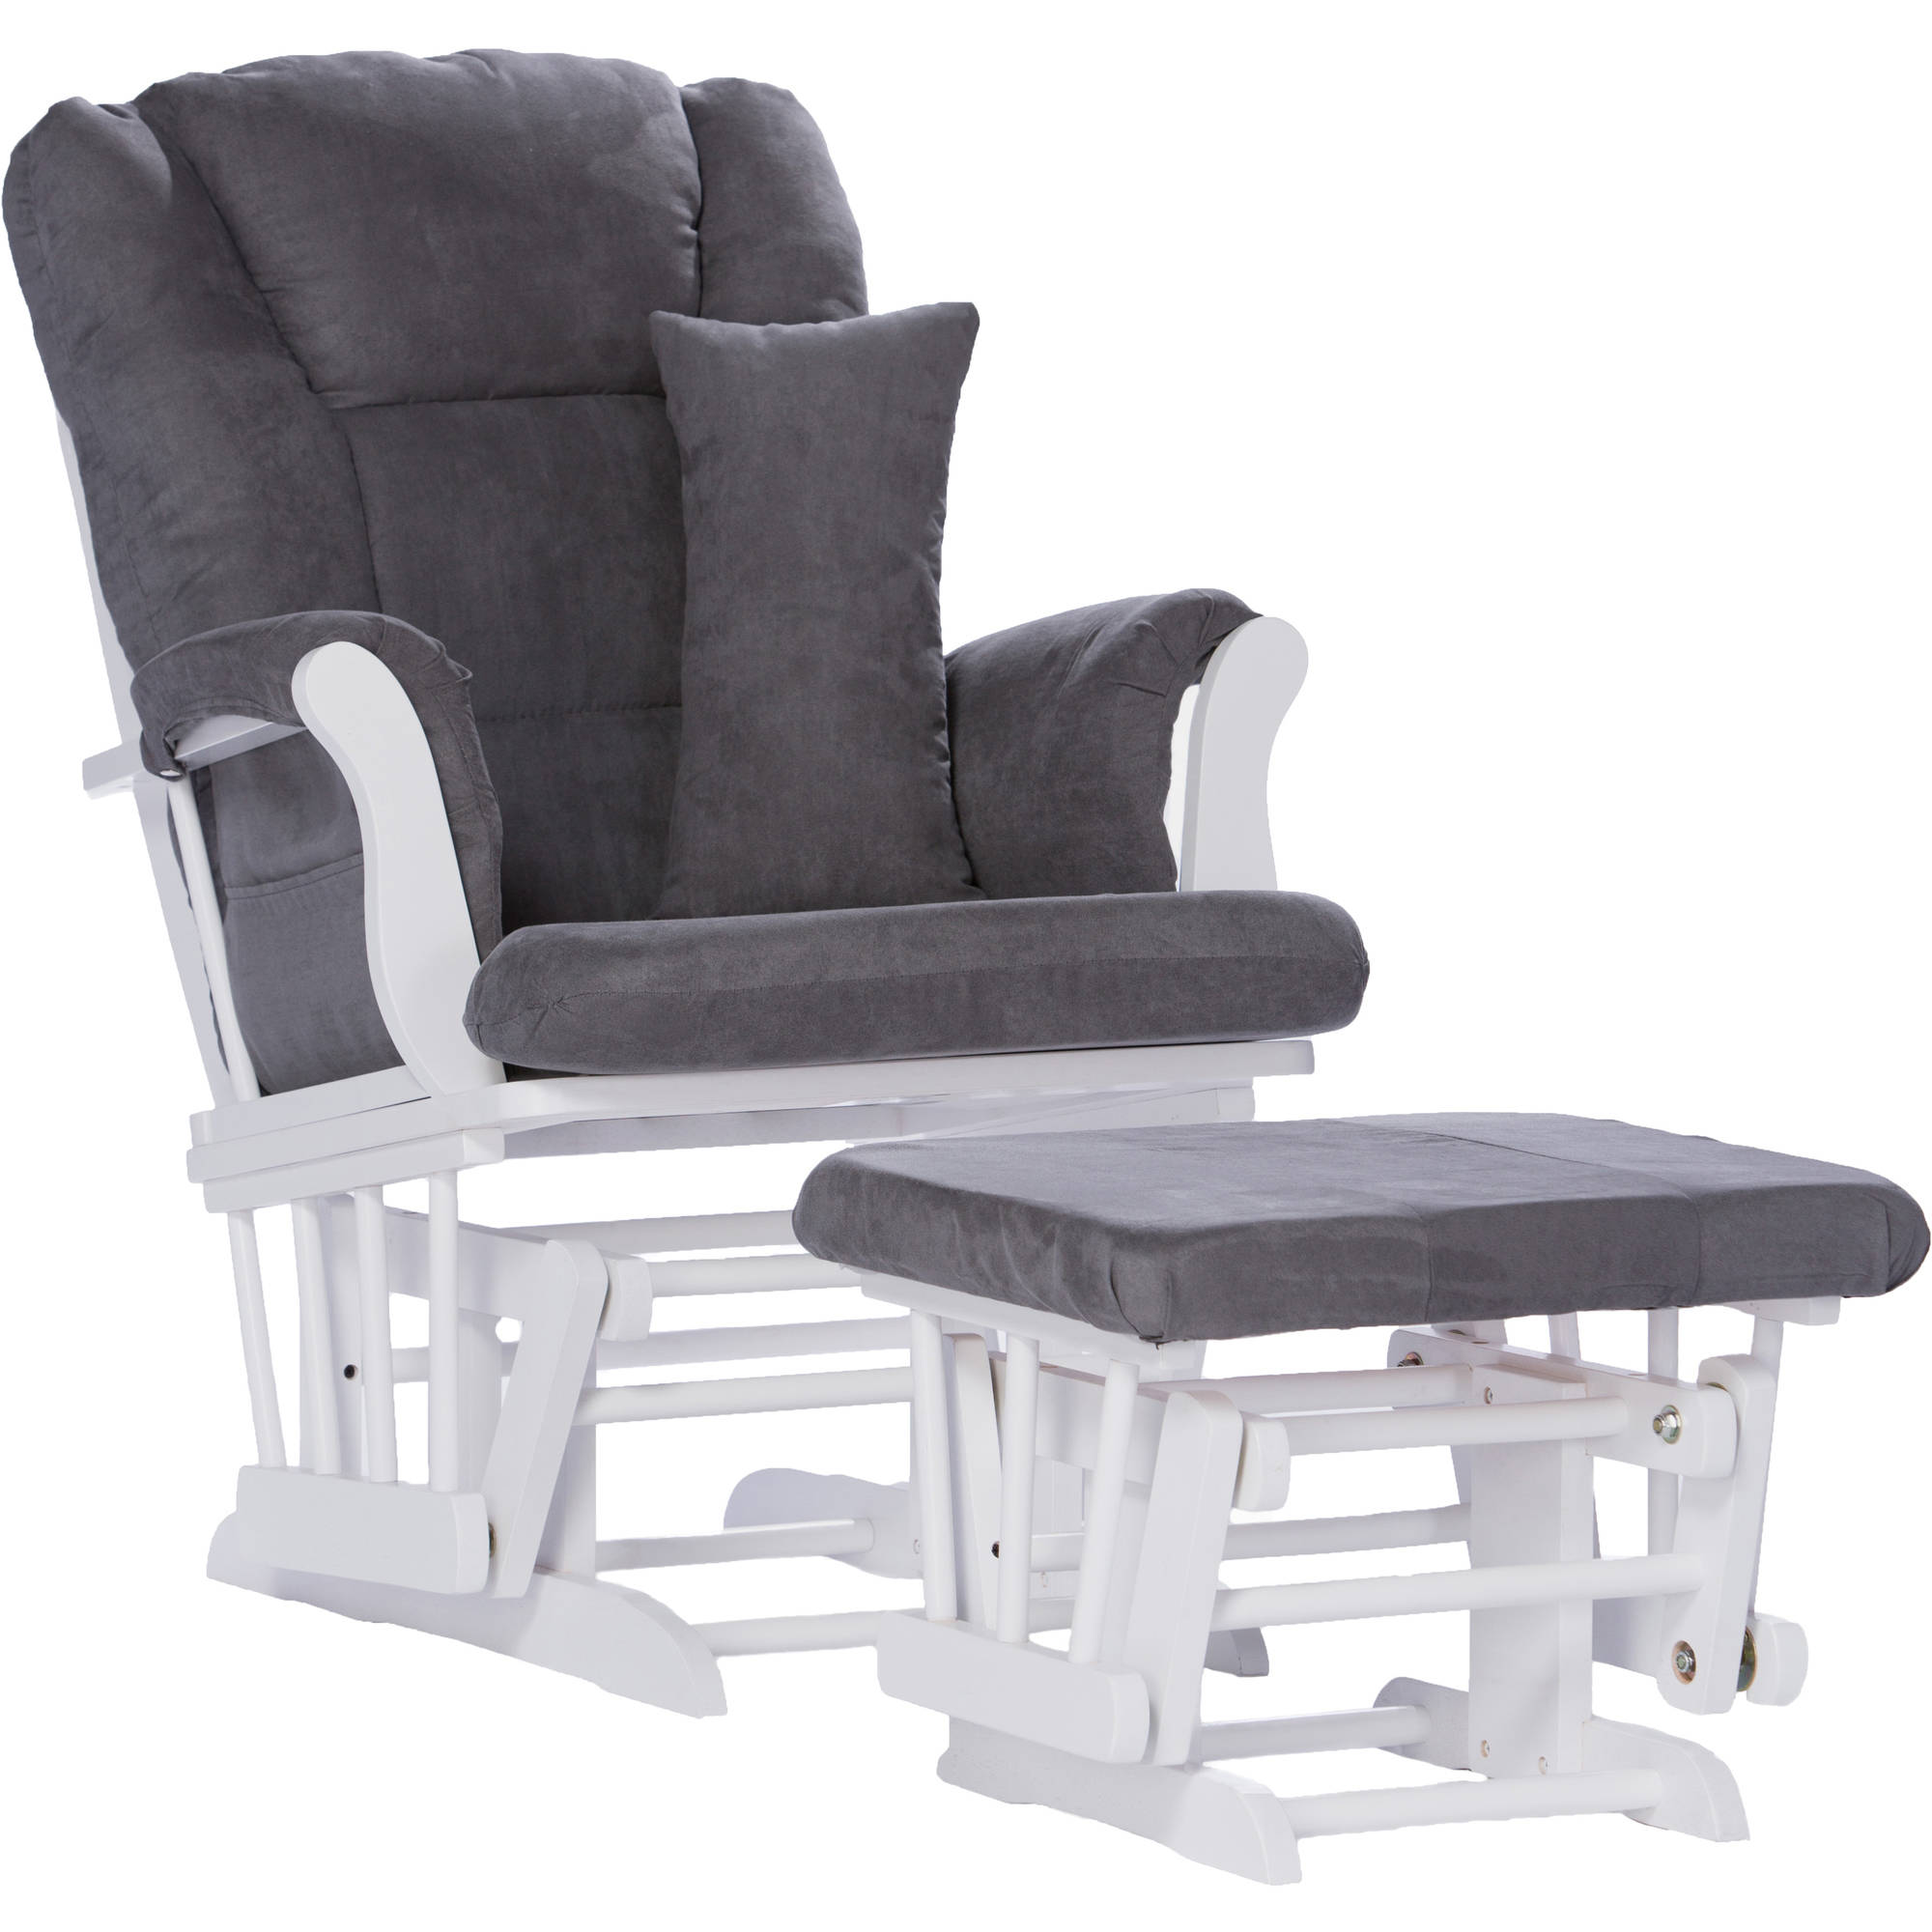 Storkcraft Tuscany Glider and Ottoman with Lumbar Pillow, White Finish, Choose Your Cushion Color